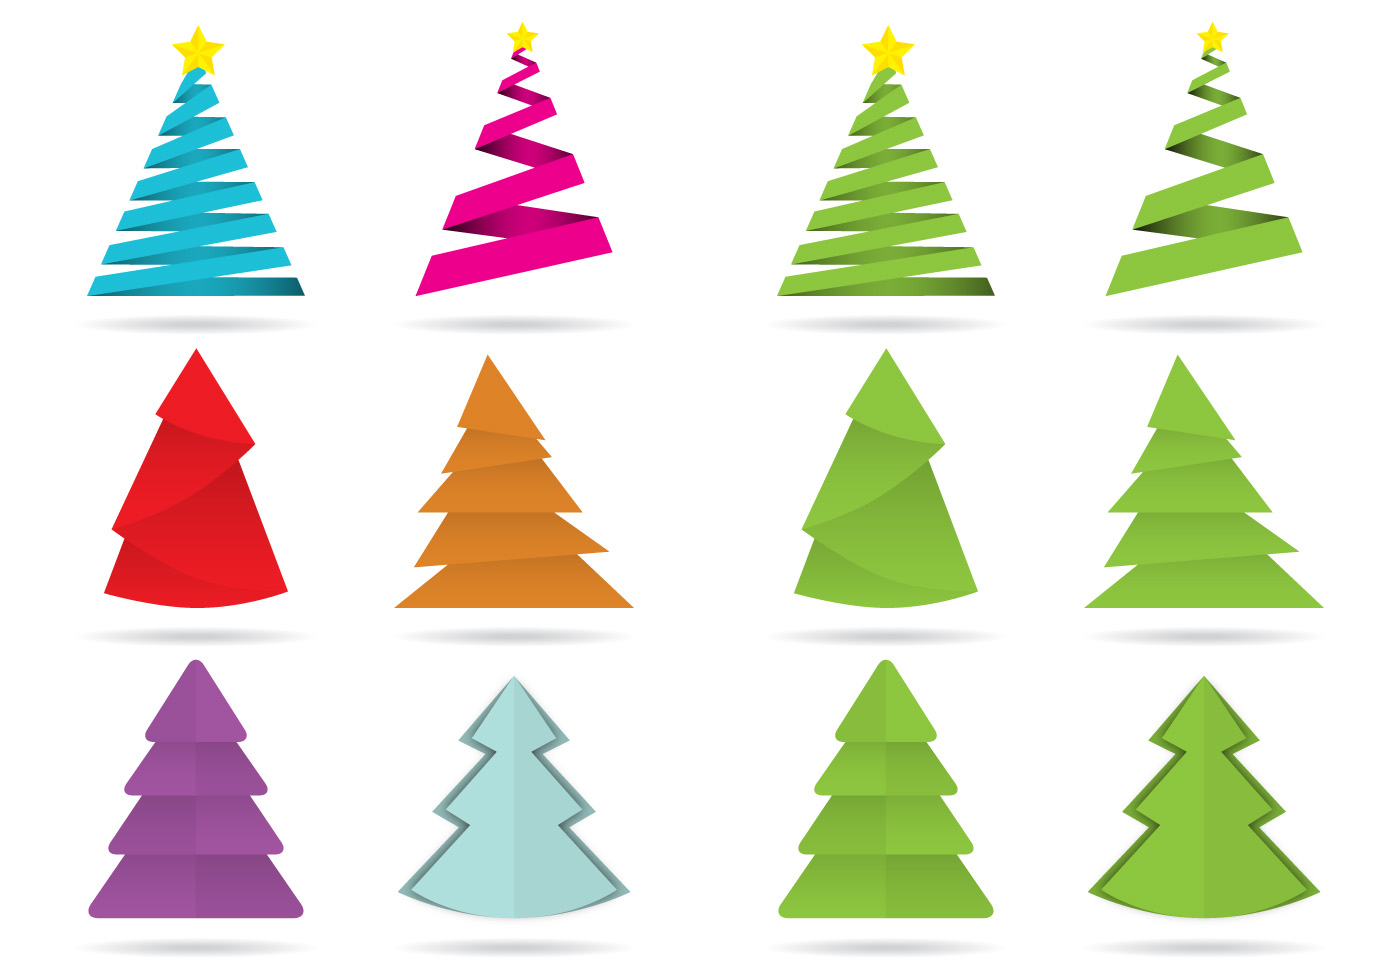 Colorful Christmas Tree Vector.Origami Christmas Free Vector Art 196 Free Downloads